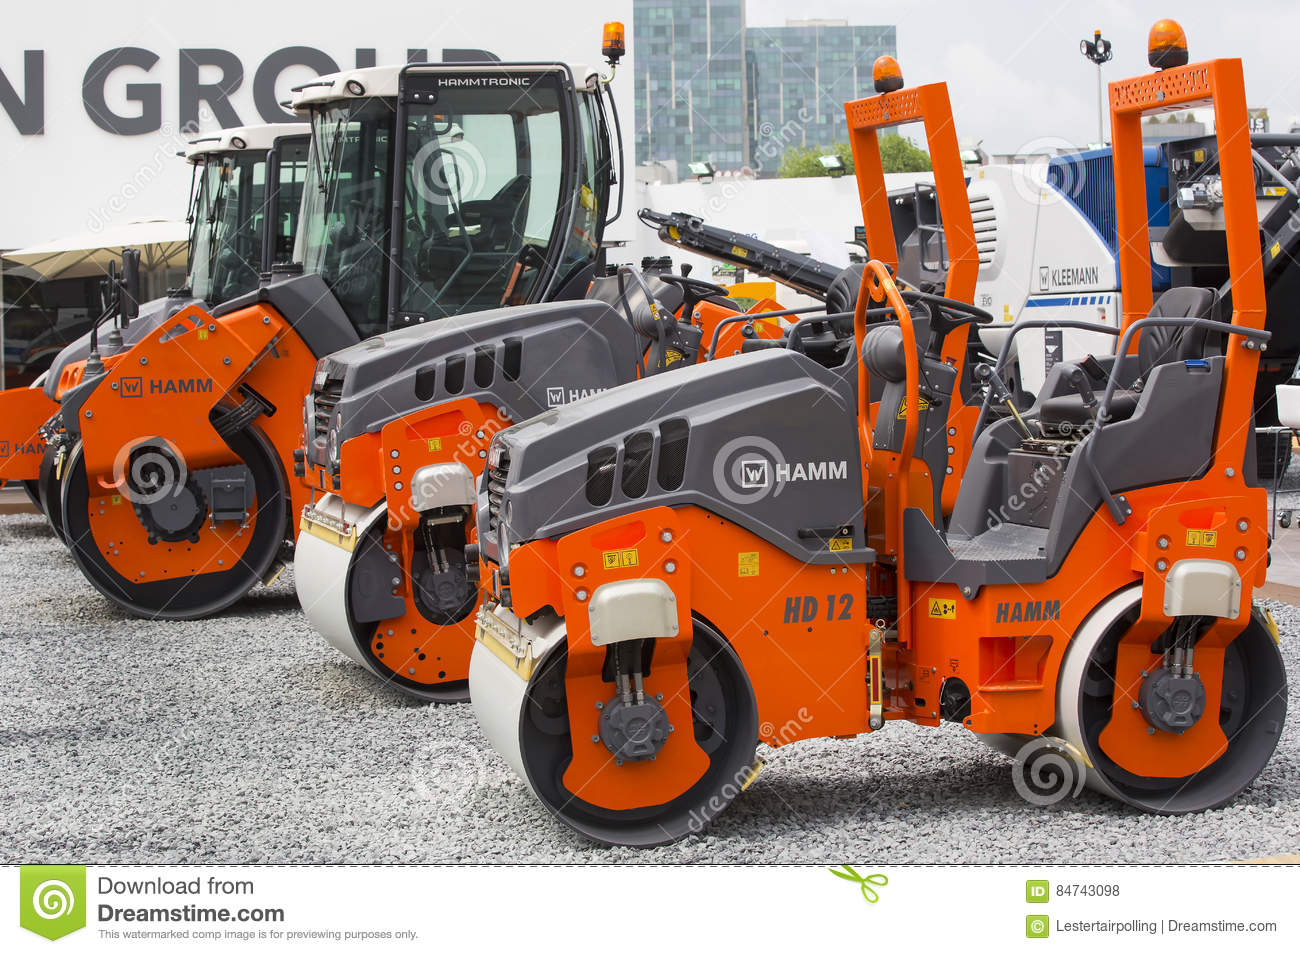 International Exhibition Of Construction Equipment, Spare Parts And